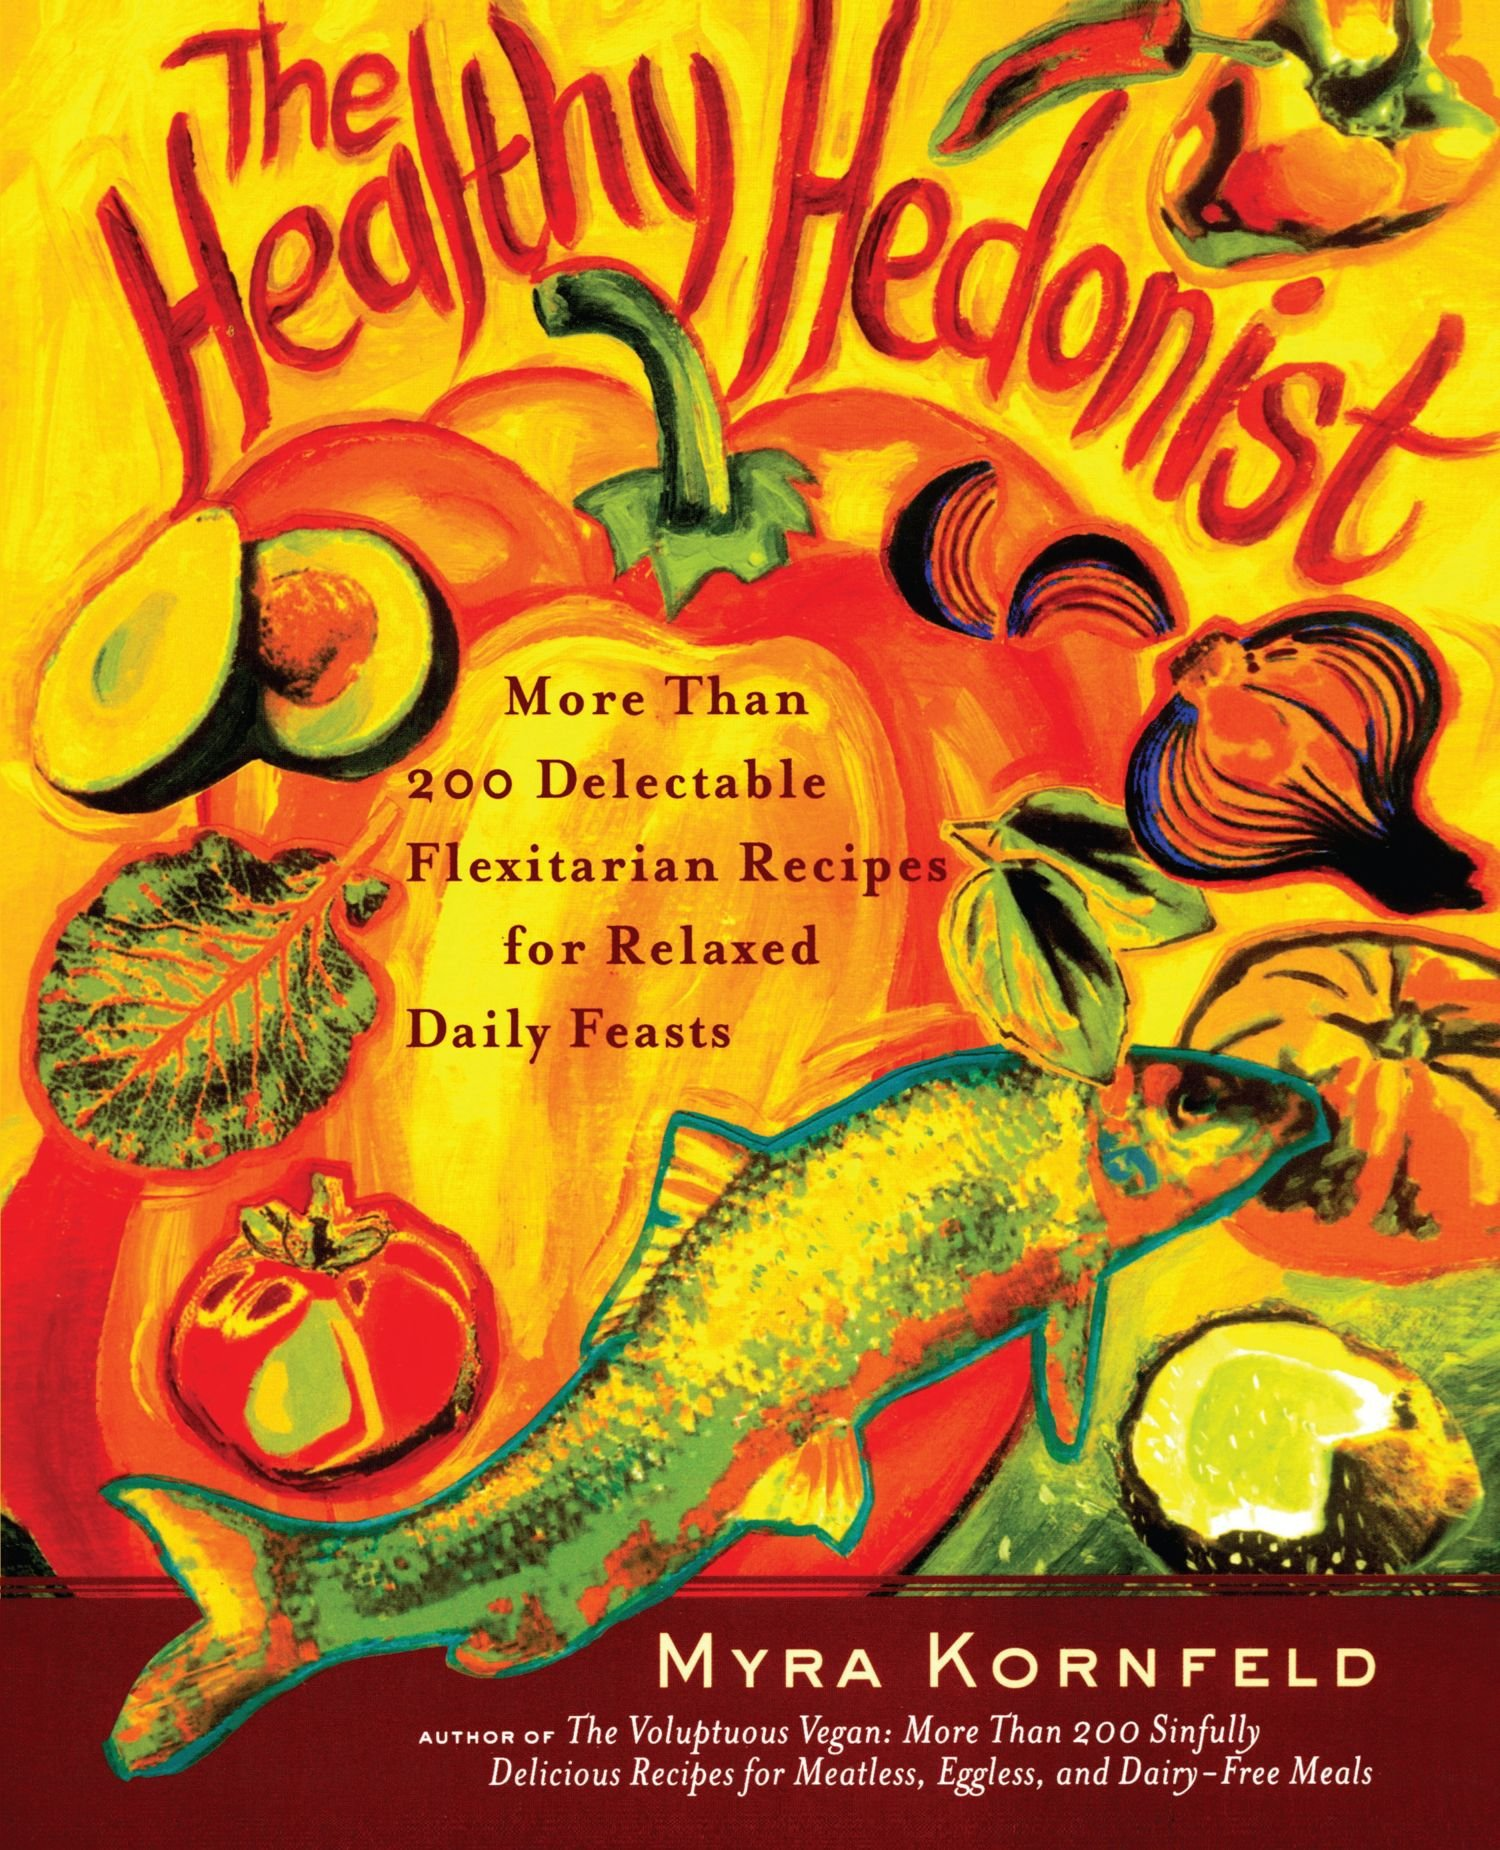 Download The Healthy Hedonist: More Than 200 Delectable Flexitarian Recipes for Relaxed Daily Feasts PDF